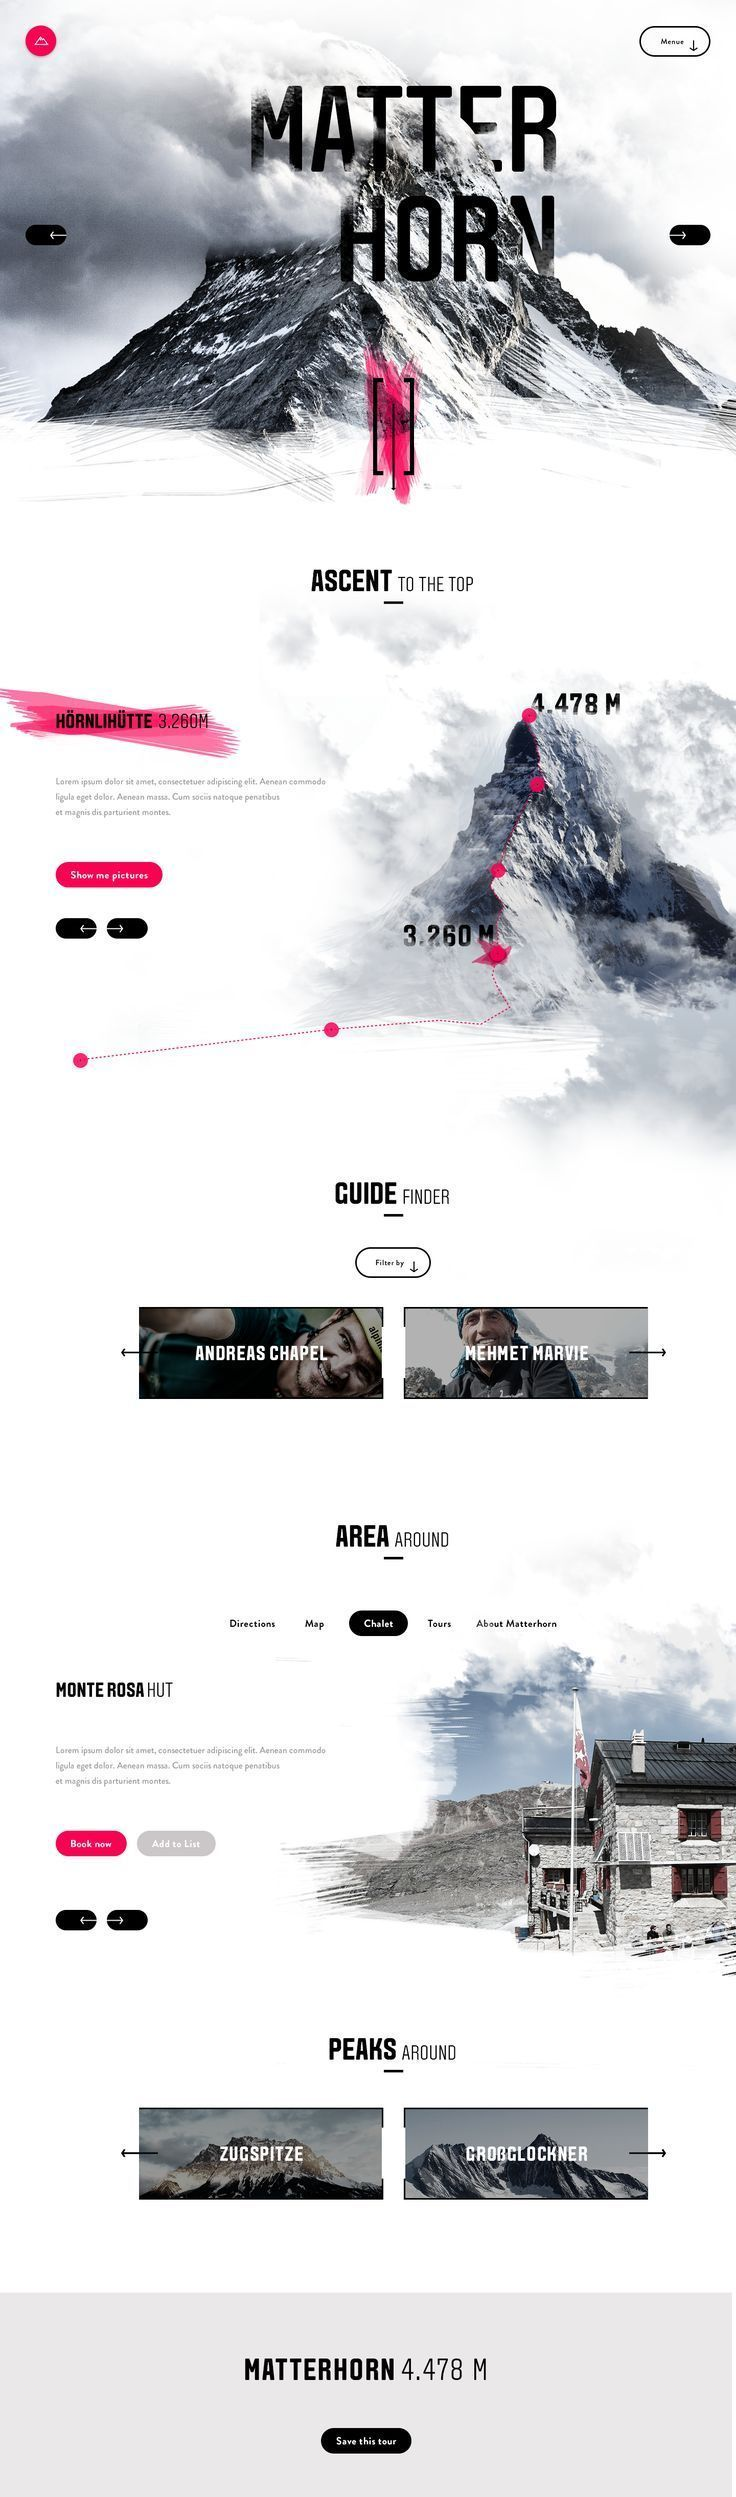 Web Design Inspiration 2018 Design Inspiration Web Website Entwurf Web Design Inspiration 2018 Design Inspiration We In 2020 Web Layout Design Web Design